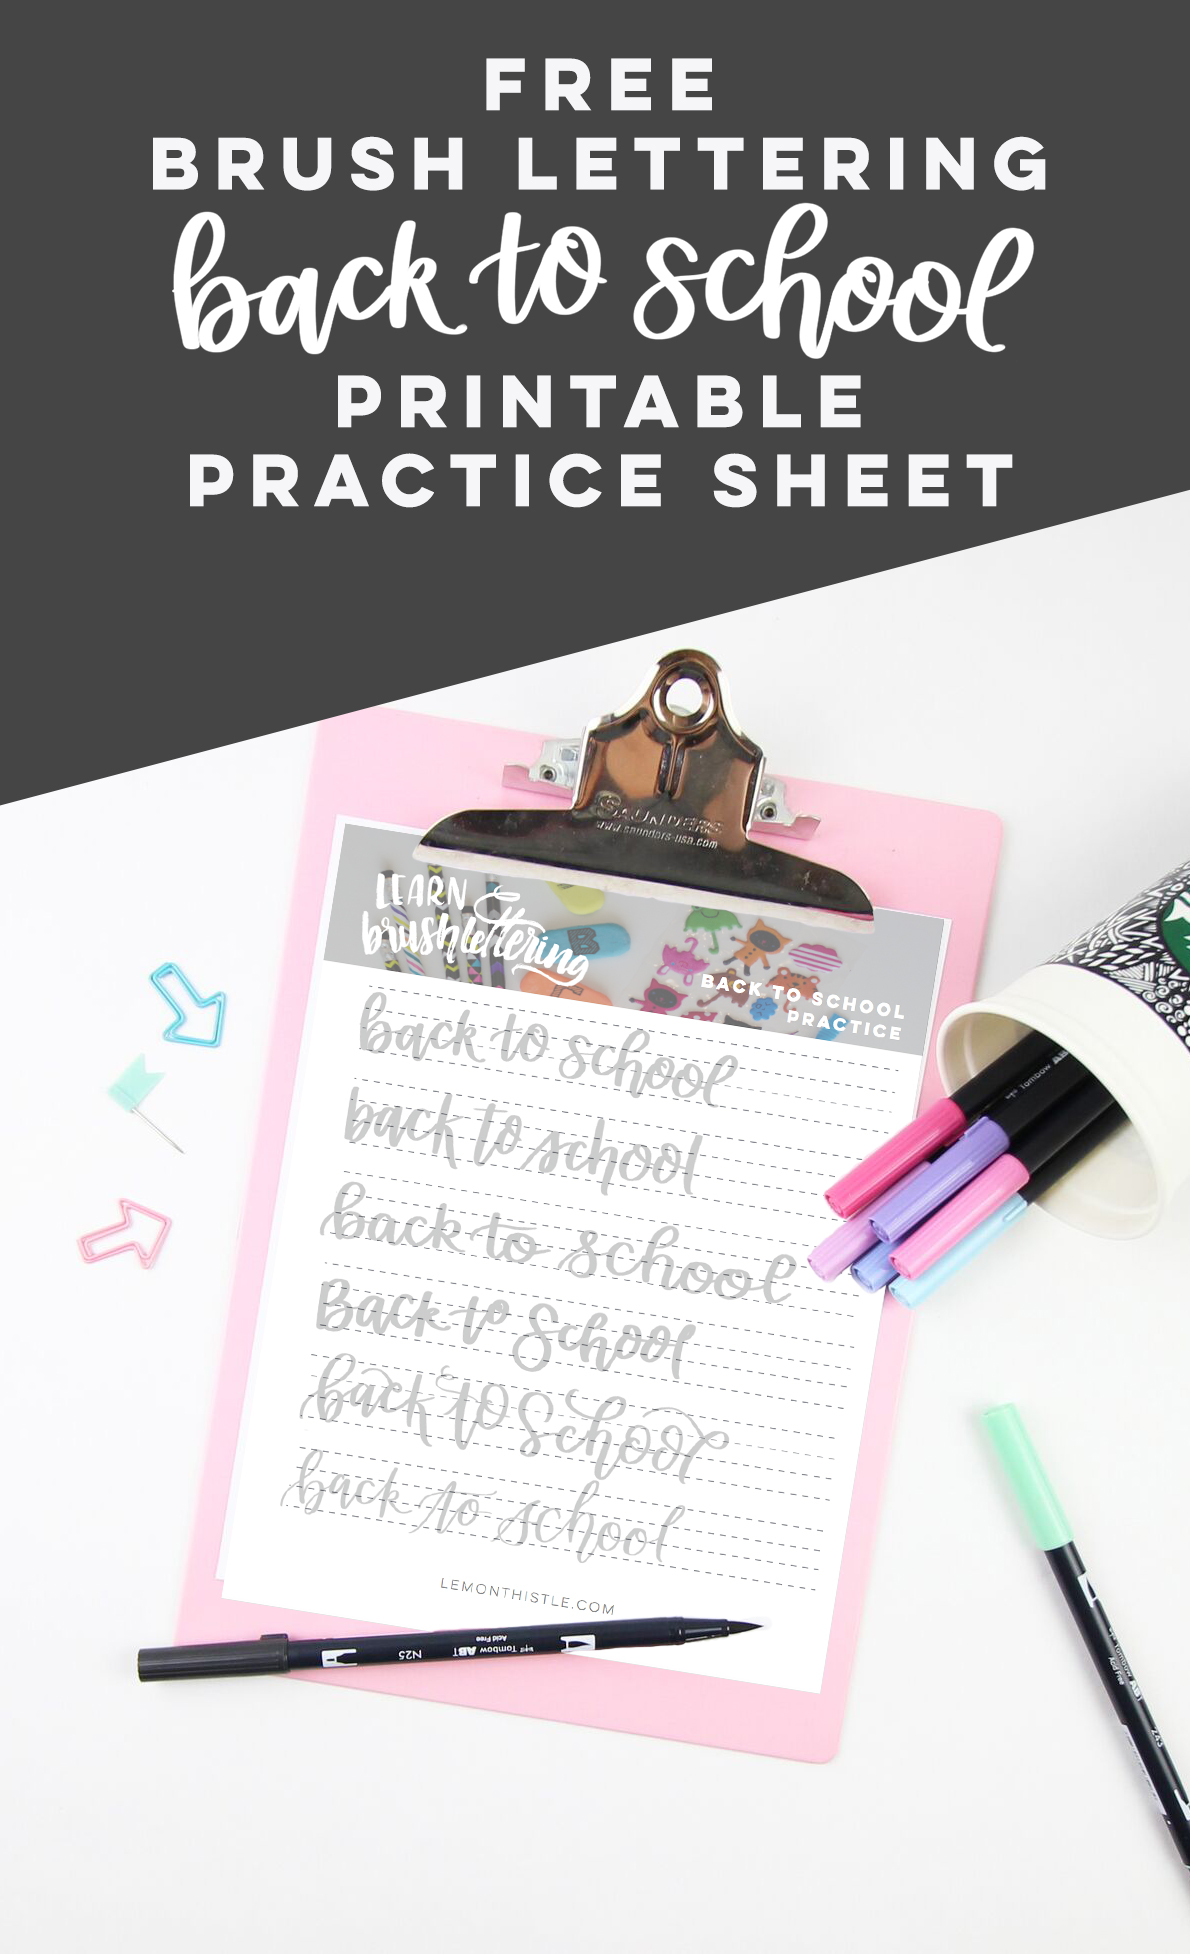 free printable brush lettered practice sheet for back to school